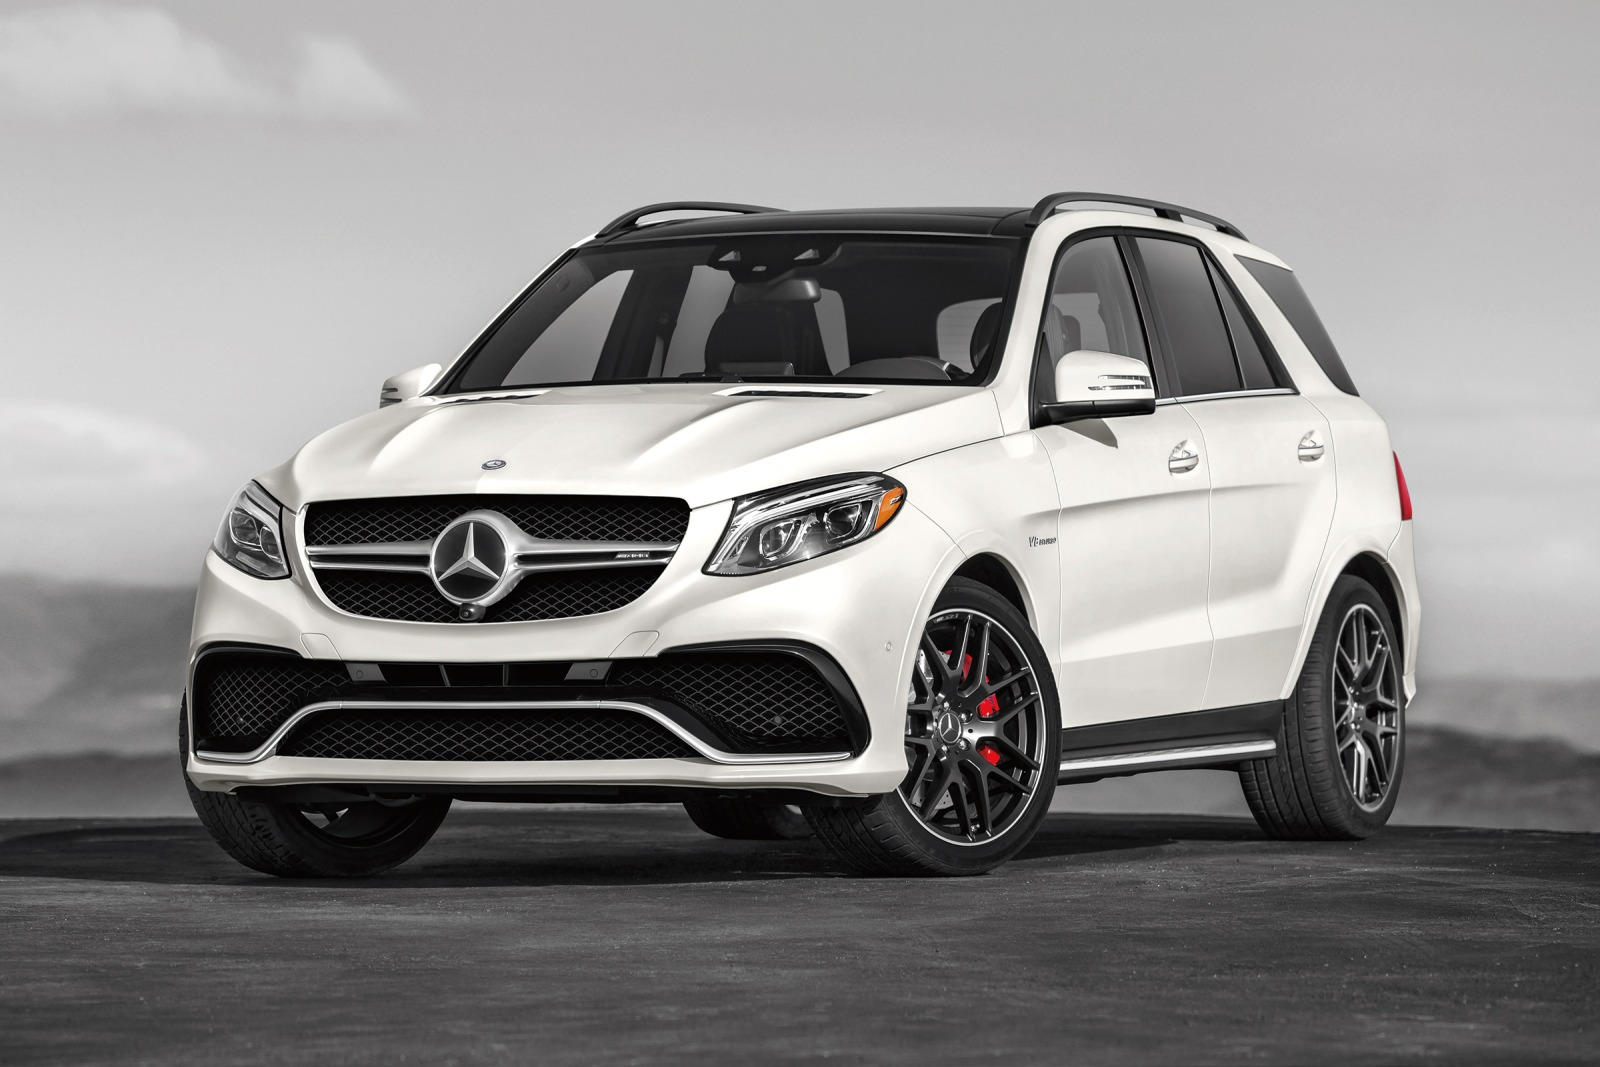 2016 mercedes benz amg gle 63 suv review trims specs and. Black Bedroom Furniture Sets. Home Design Ideas